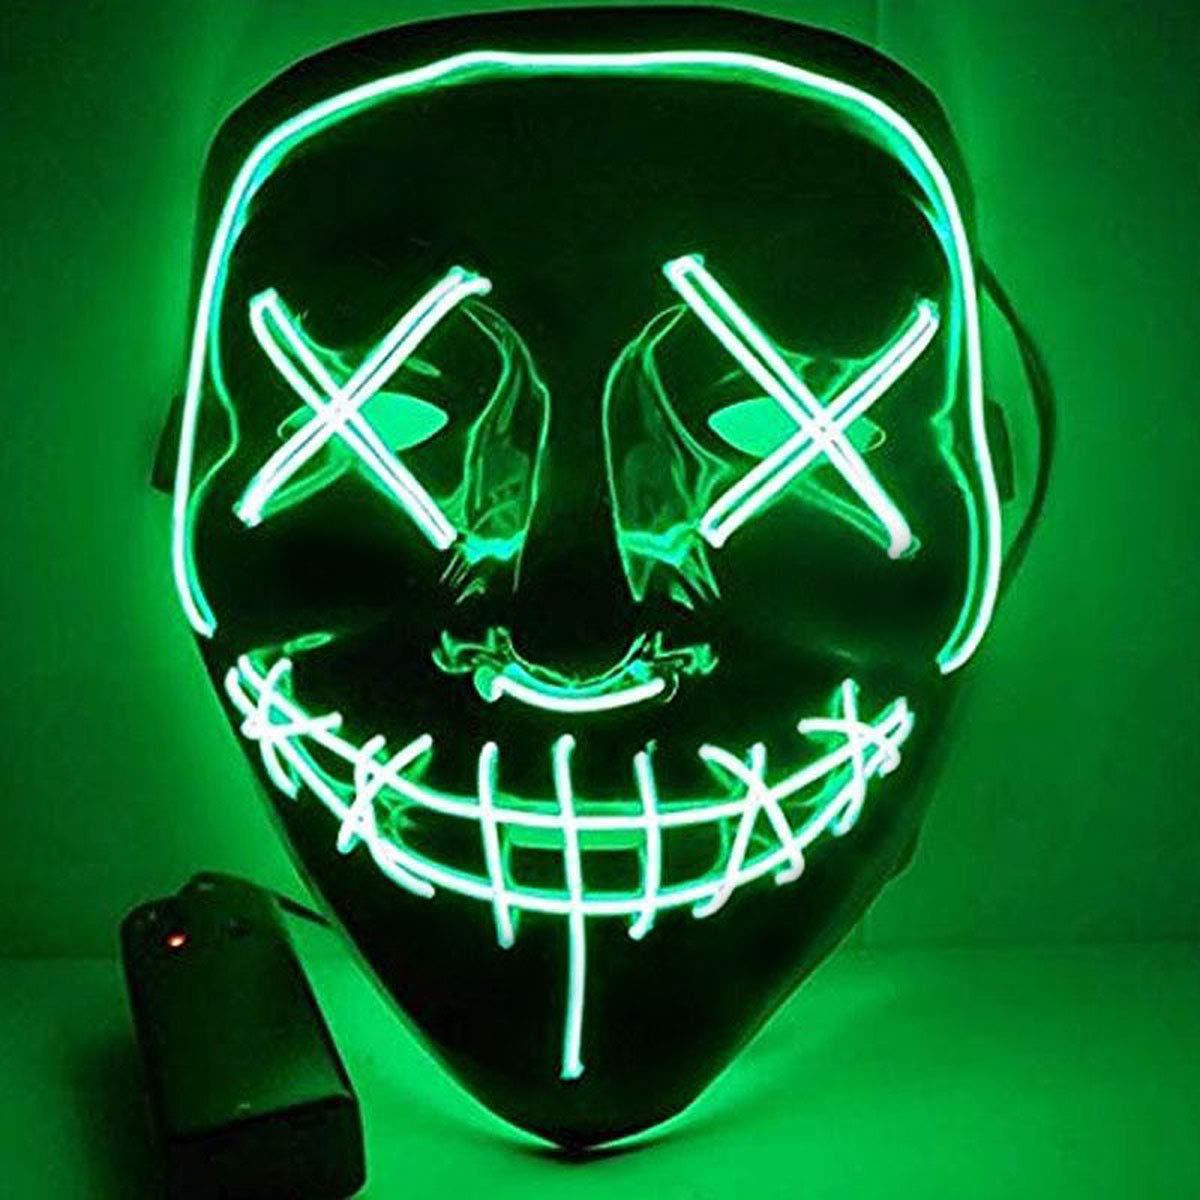 Halloween Mask LED Light Up Mask Halloween Scary Cosplay Mask for Festival Parties Costume